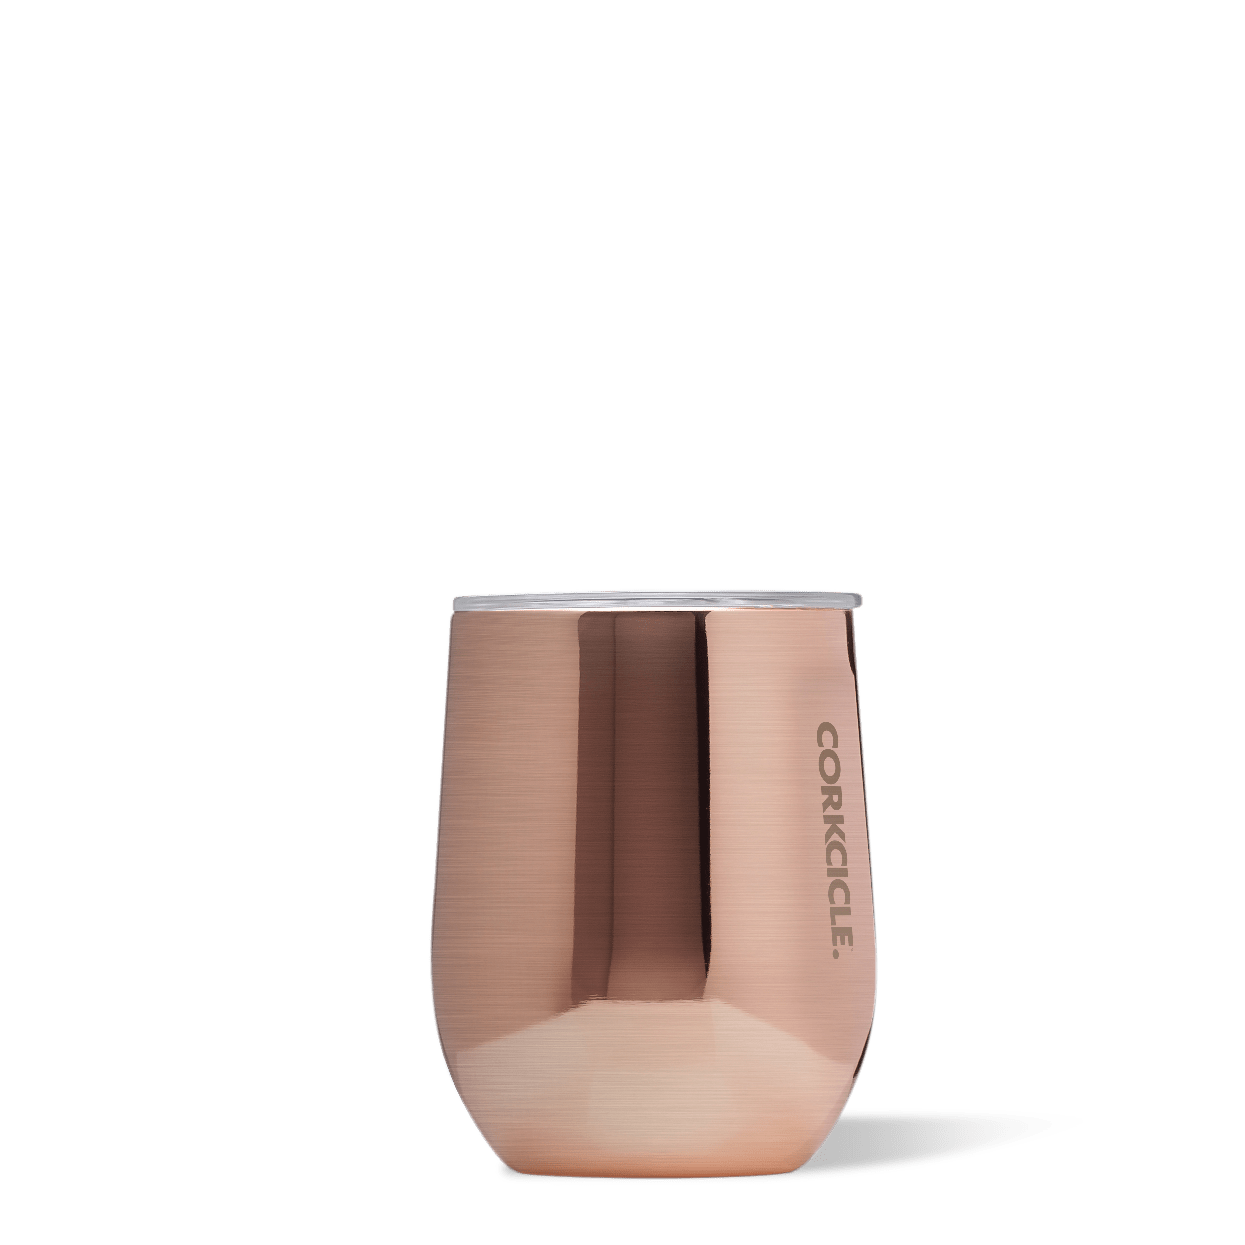 Corkcicle Copper 12oz Stemless Wine Cup.